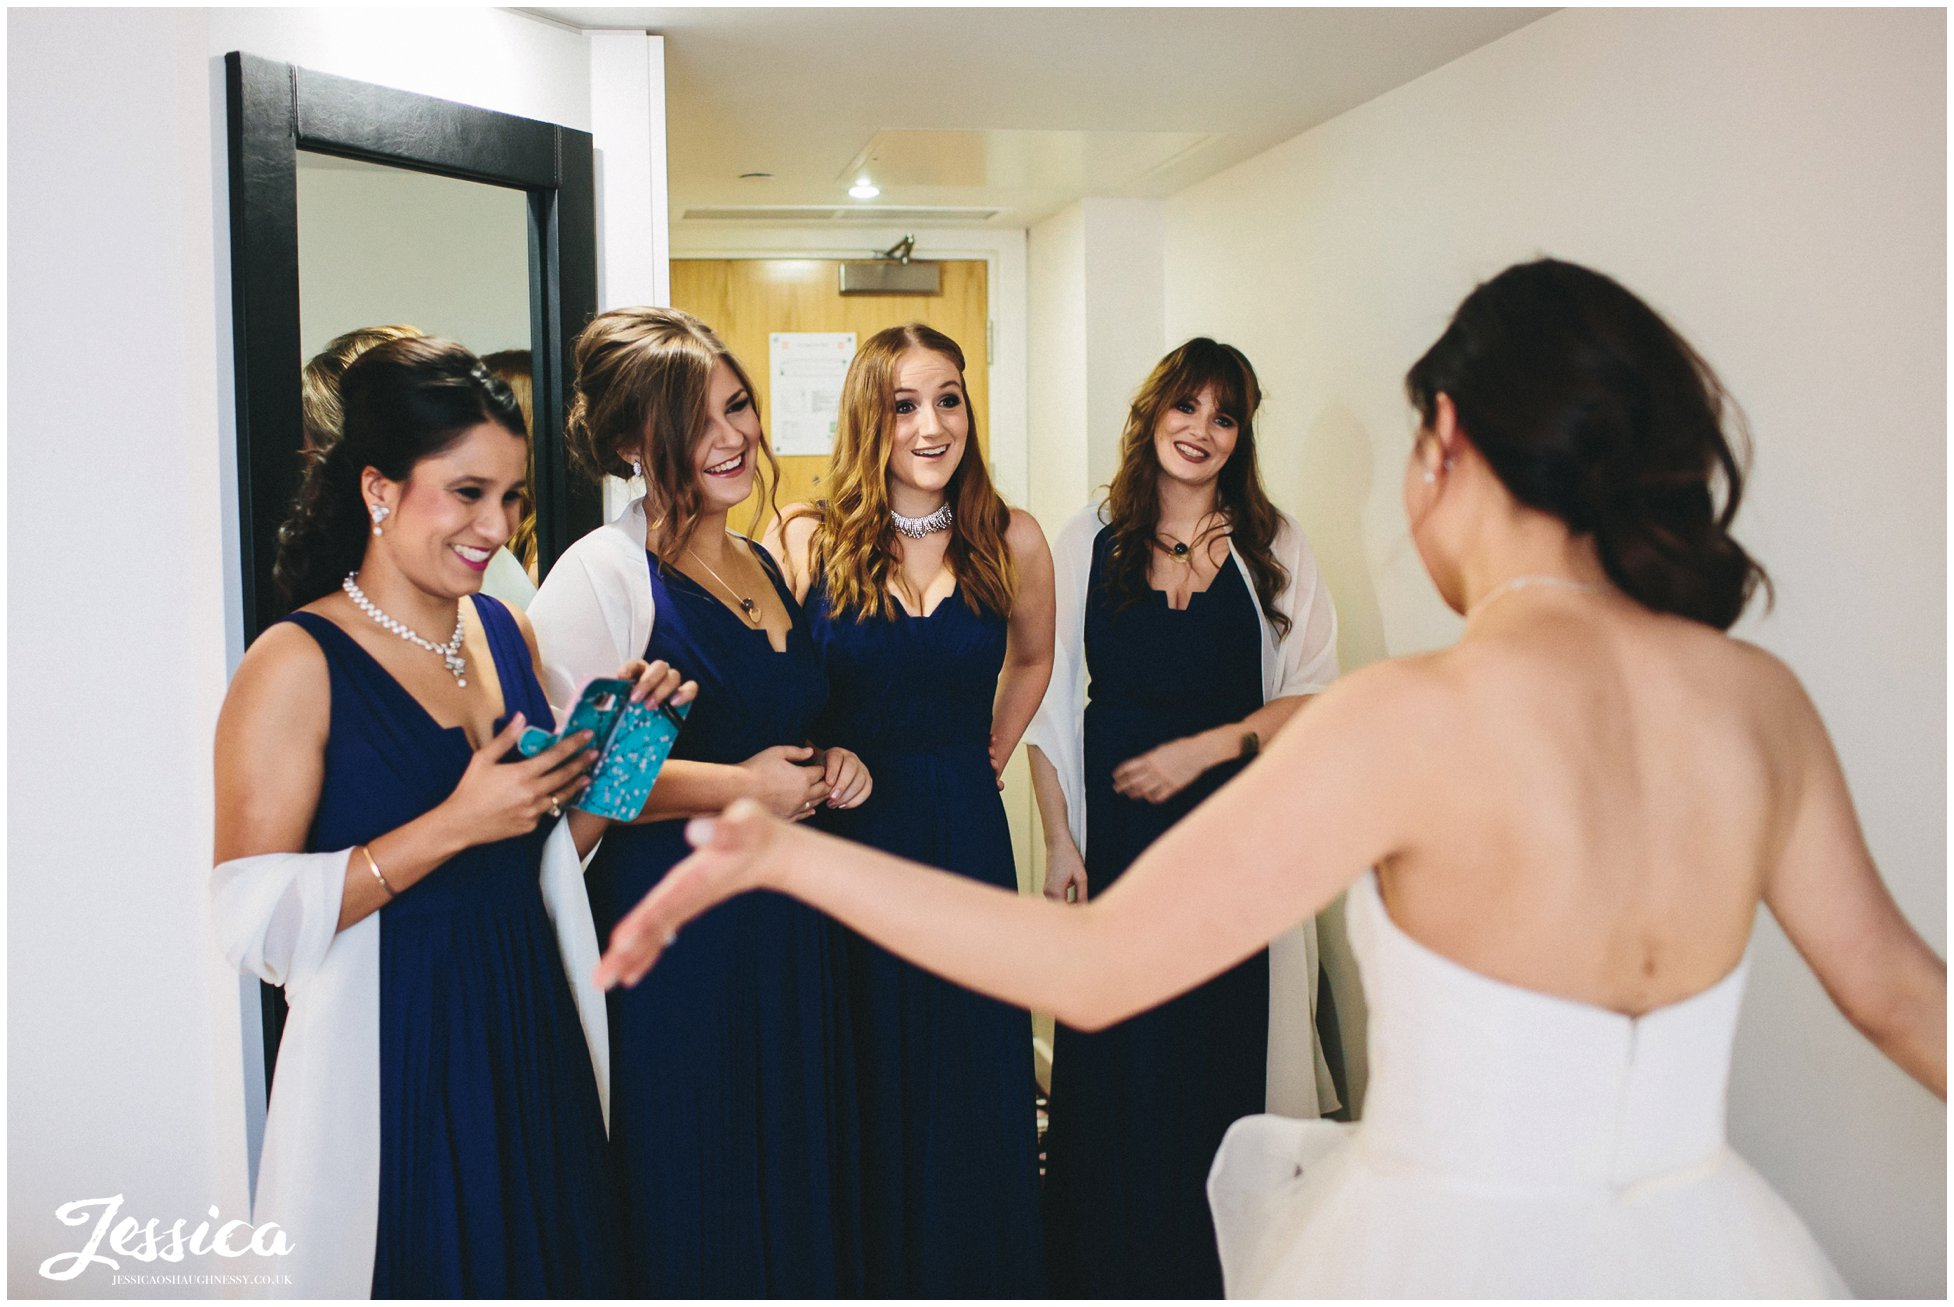 bridesmaids admire the bride & her dress before her wedding ceremony in manchester